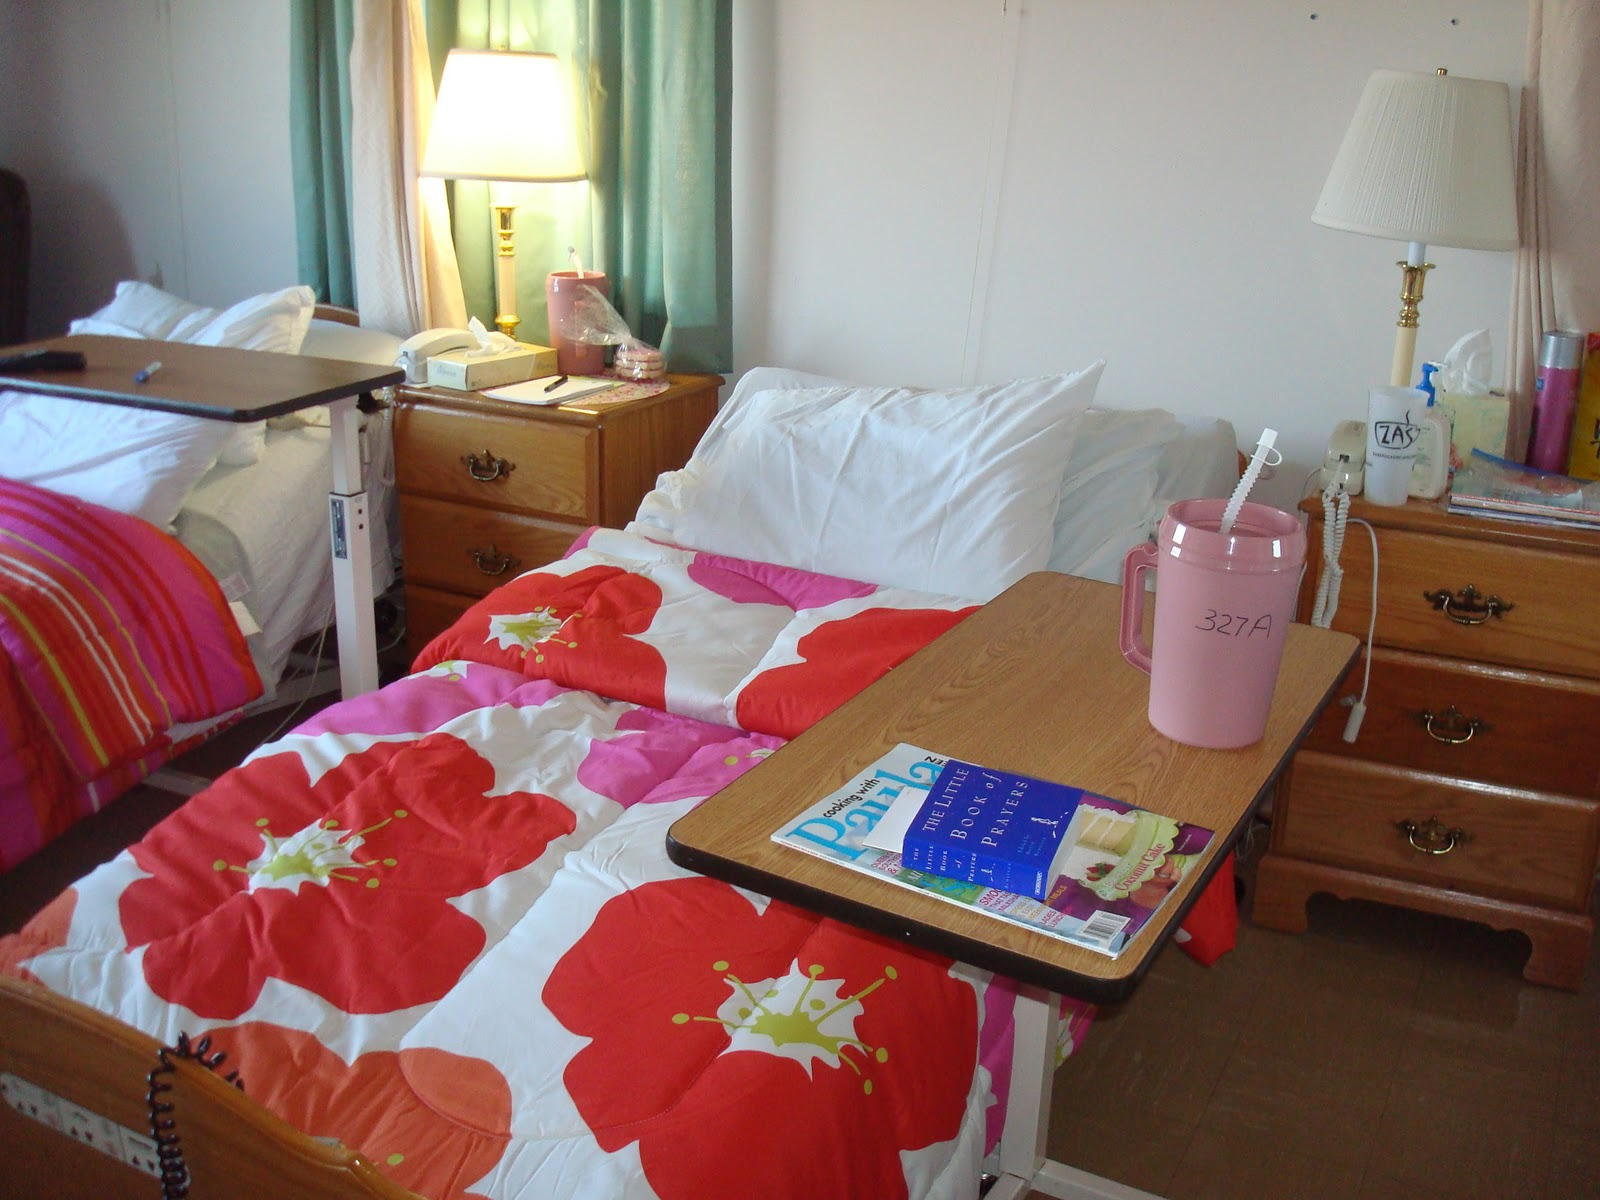 dorm room chairs bed bath and beyond chair stool dwg i need mom!: nursing home makeover